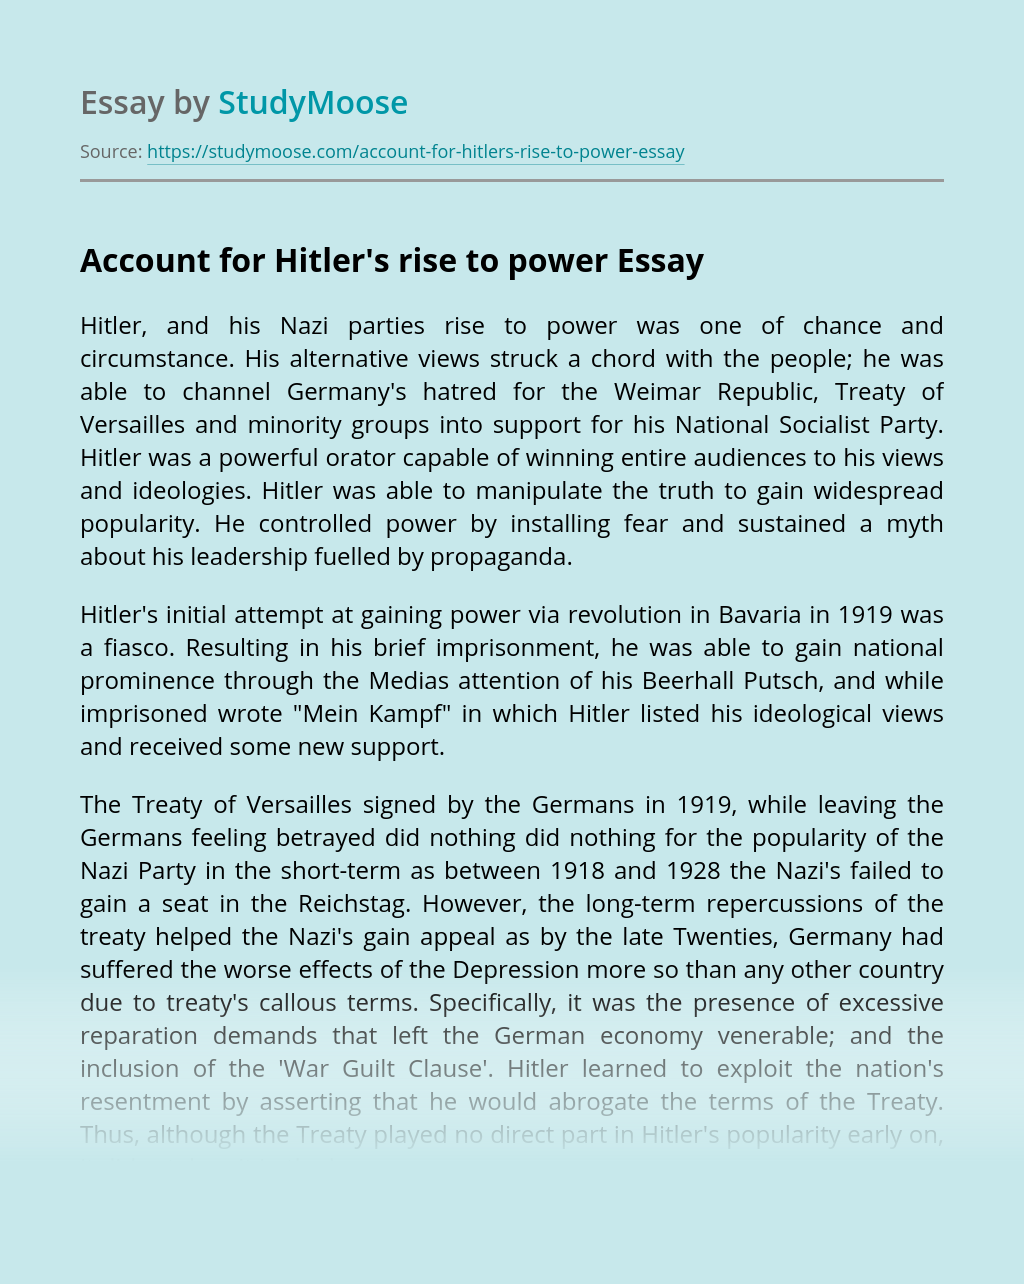 Account for Hitler's rise to power